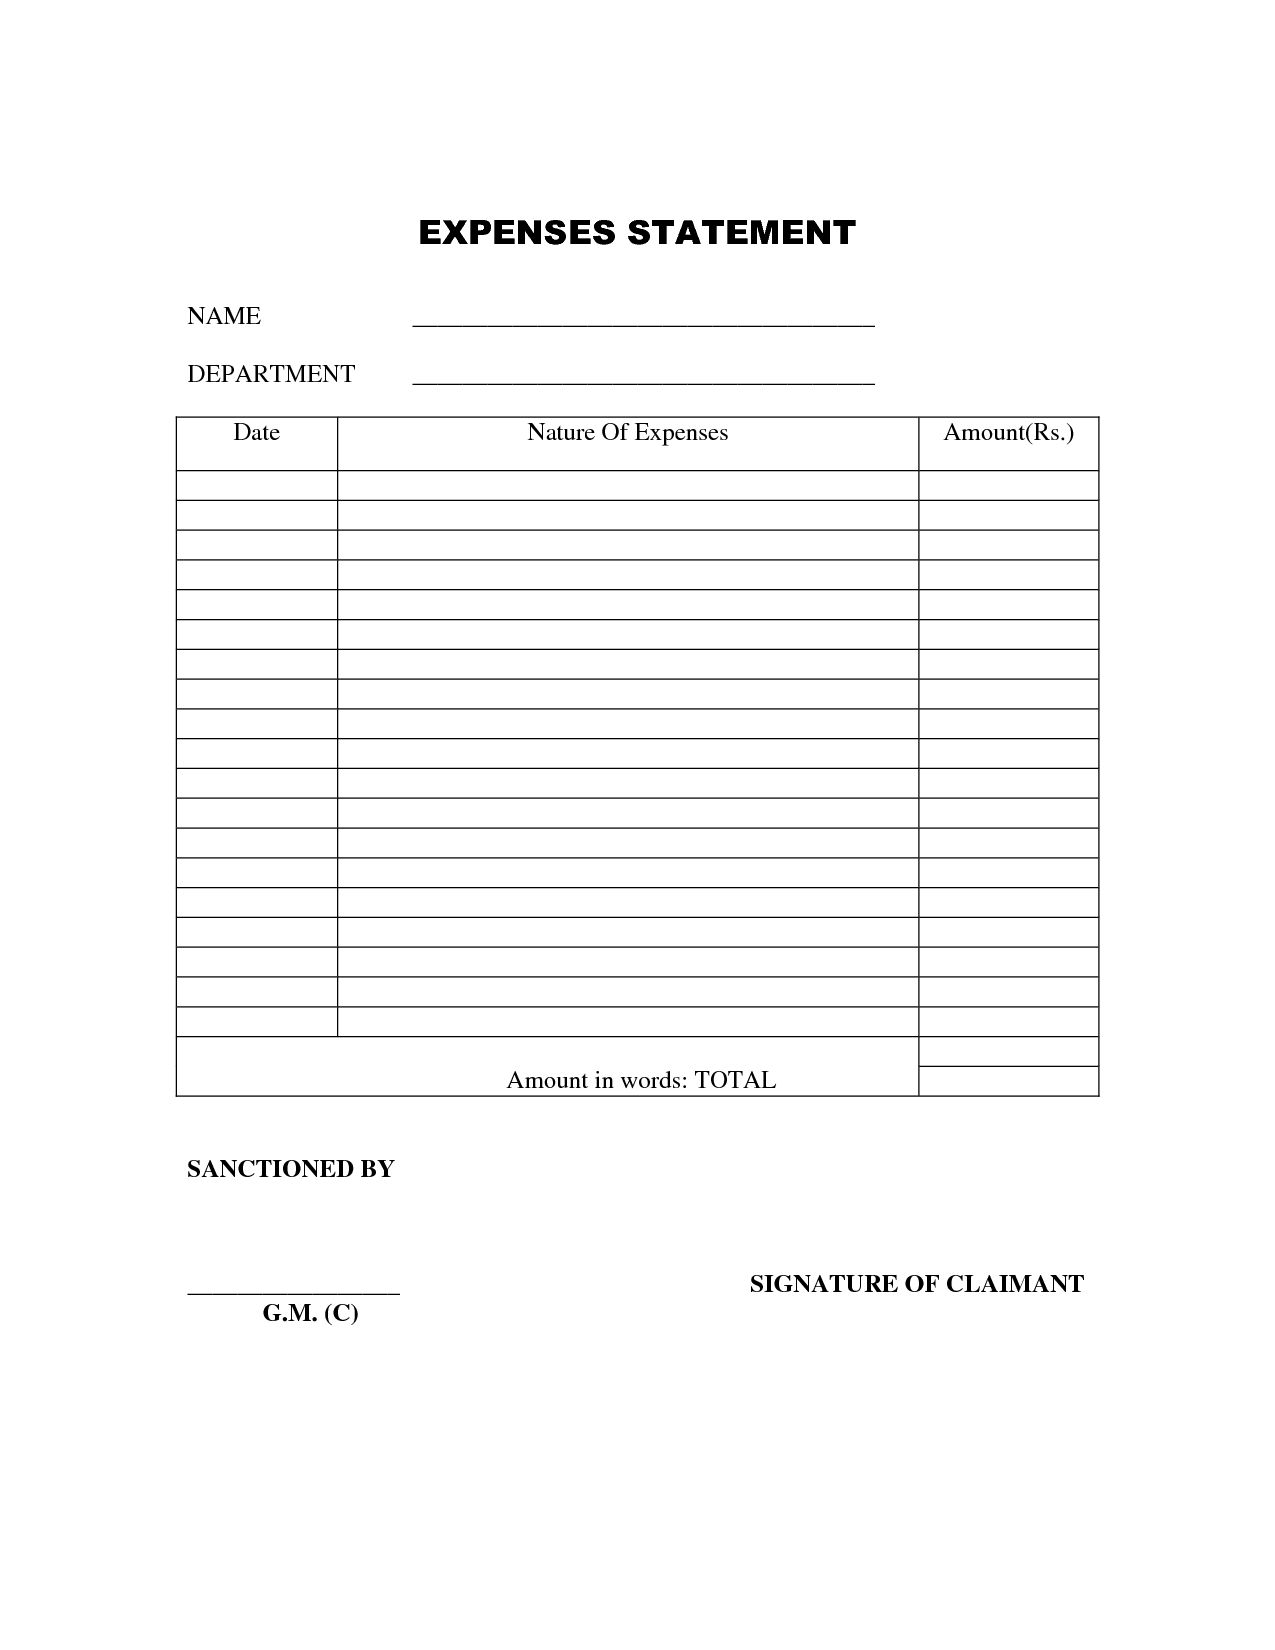 Simple Expense Report Form Save.btsa.co With Simple Expense Form Within Simple Expense Form